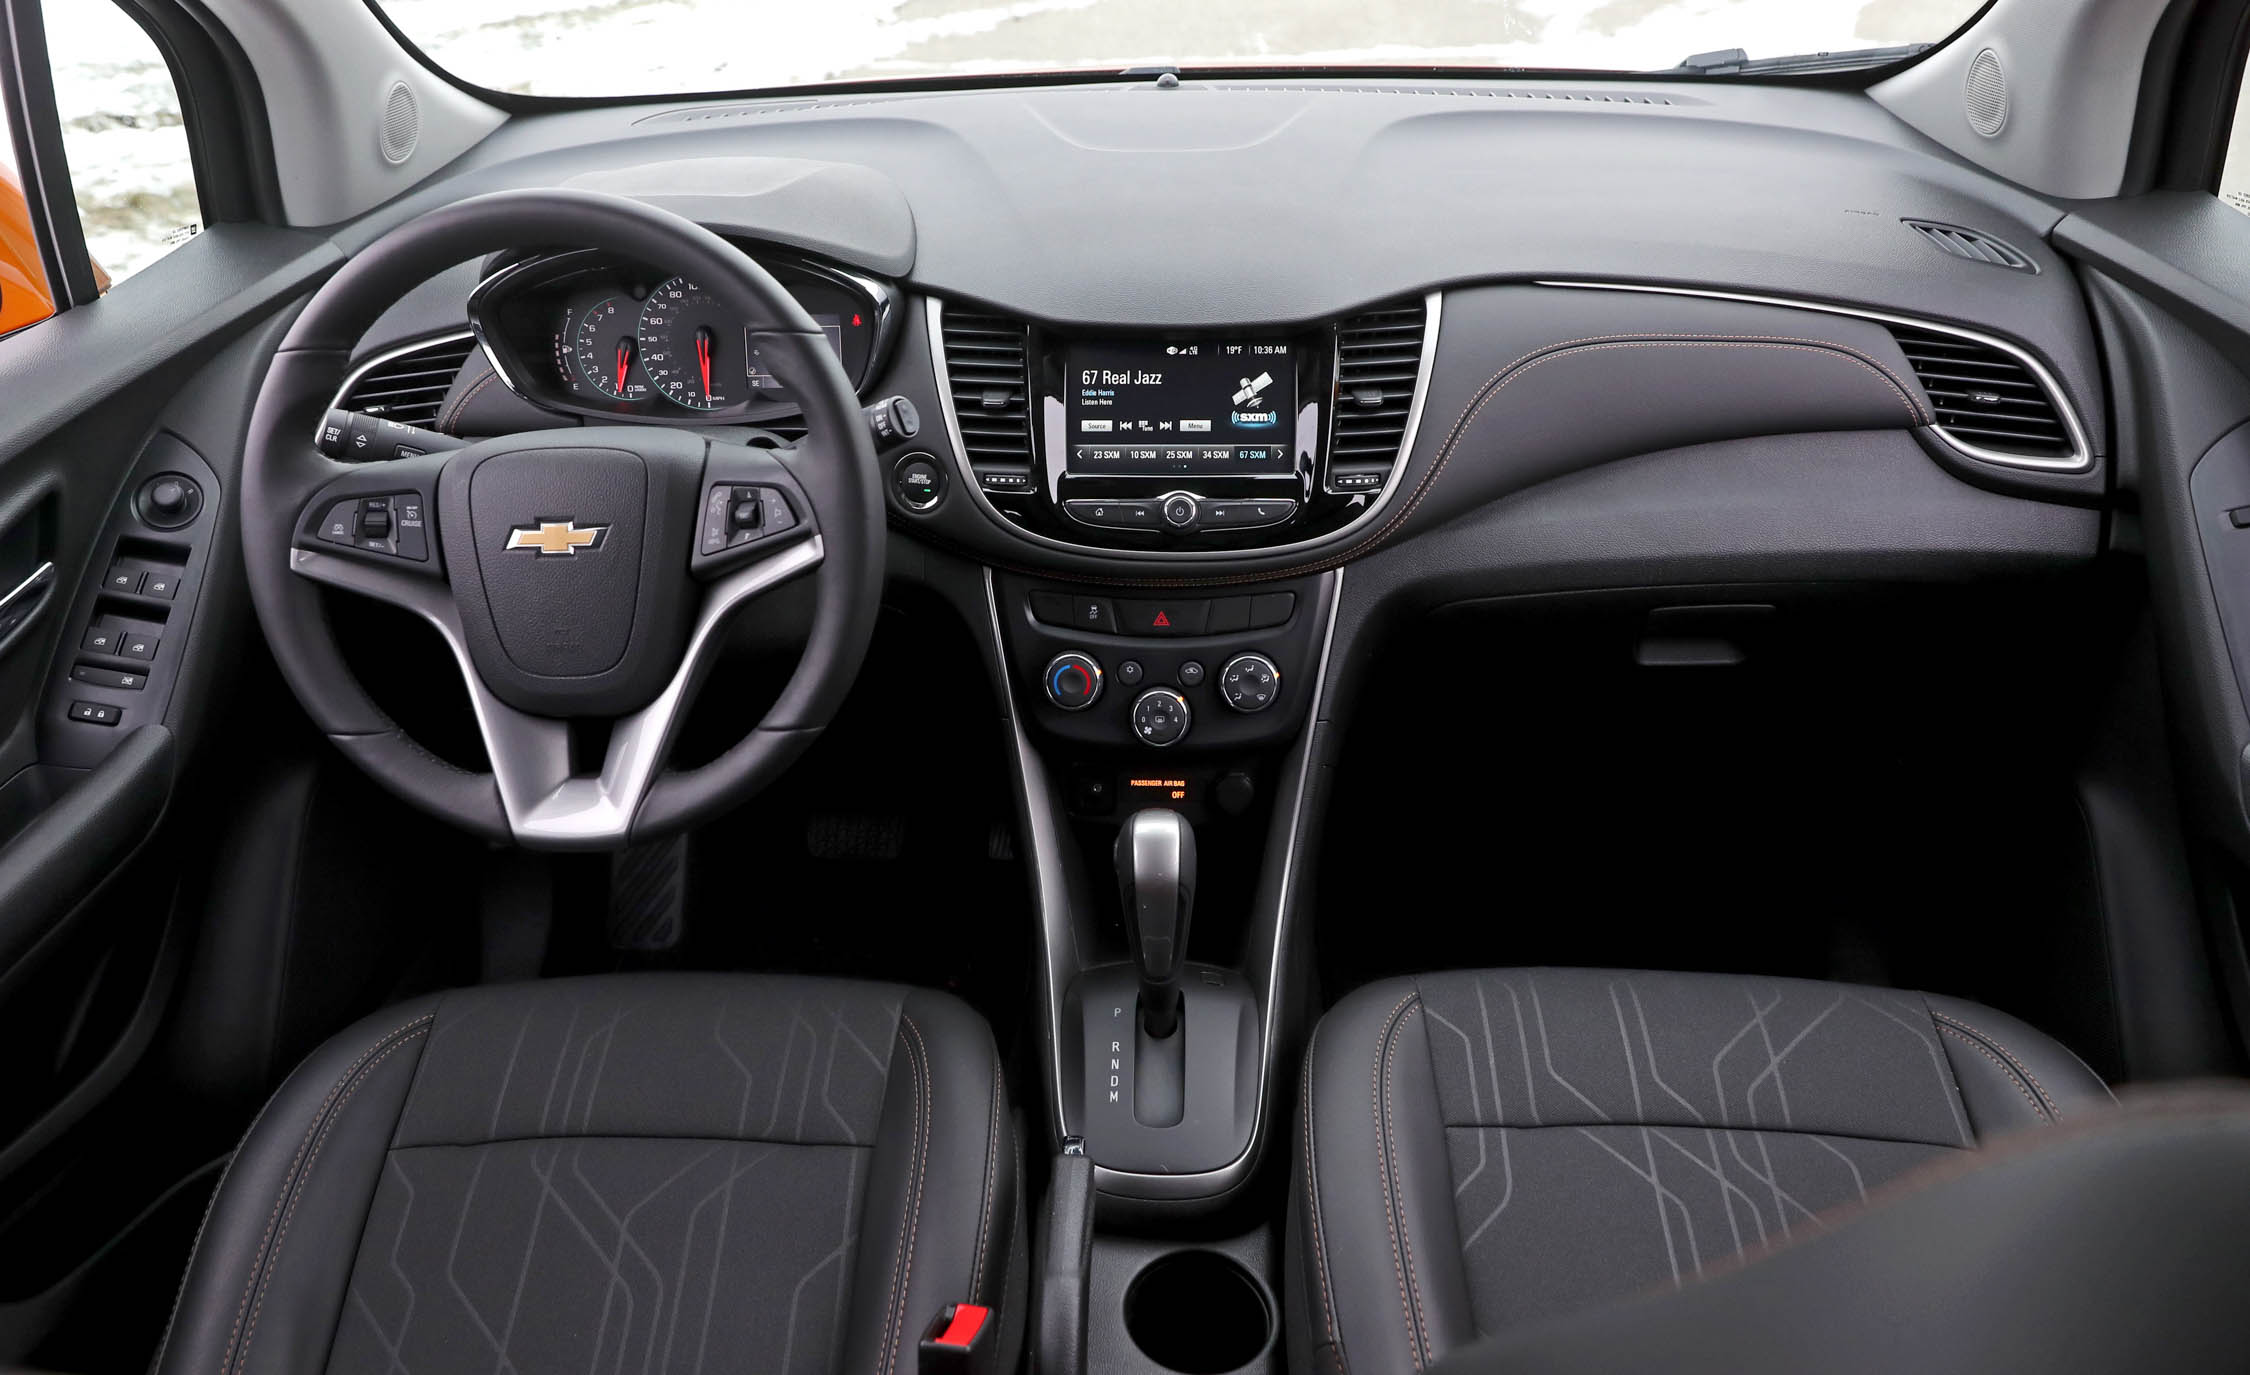 2017 Chevrolet Trax Interior Steering And Dashboard (Photo 23 of 47)